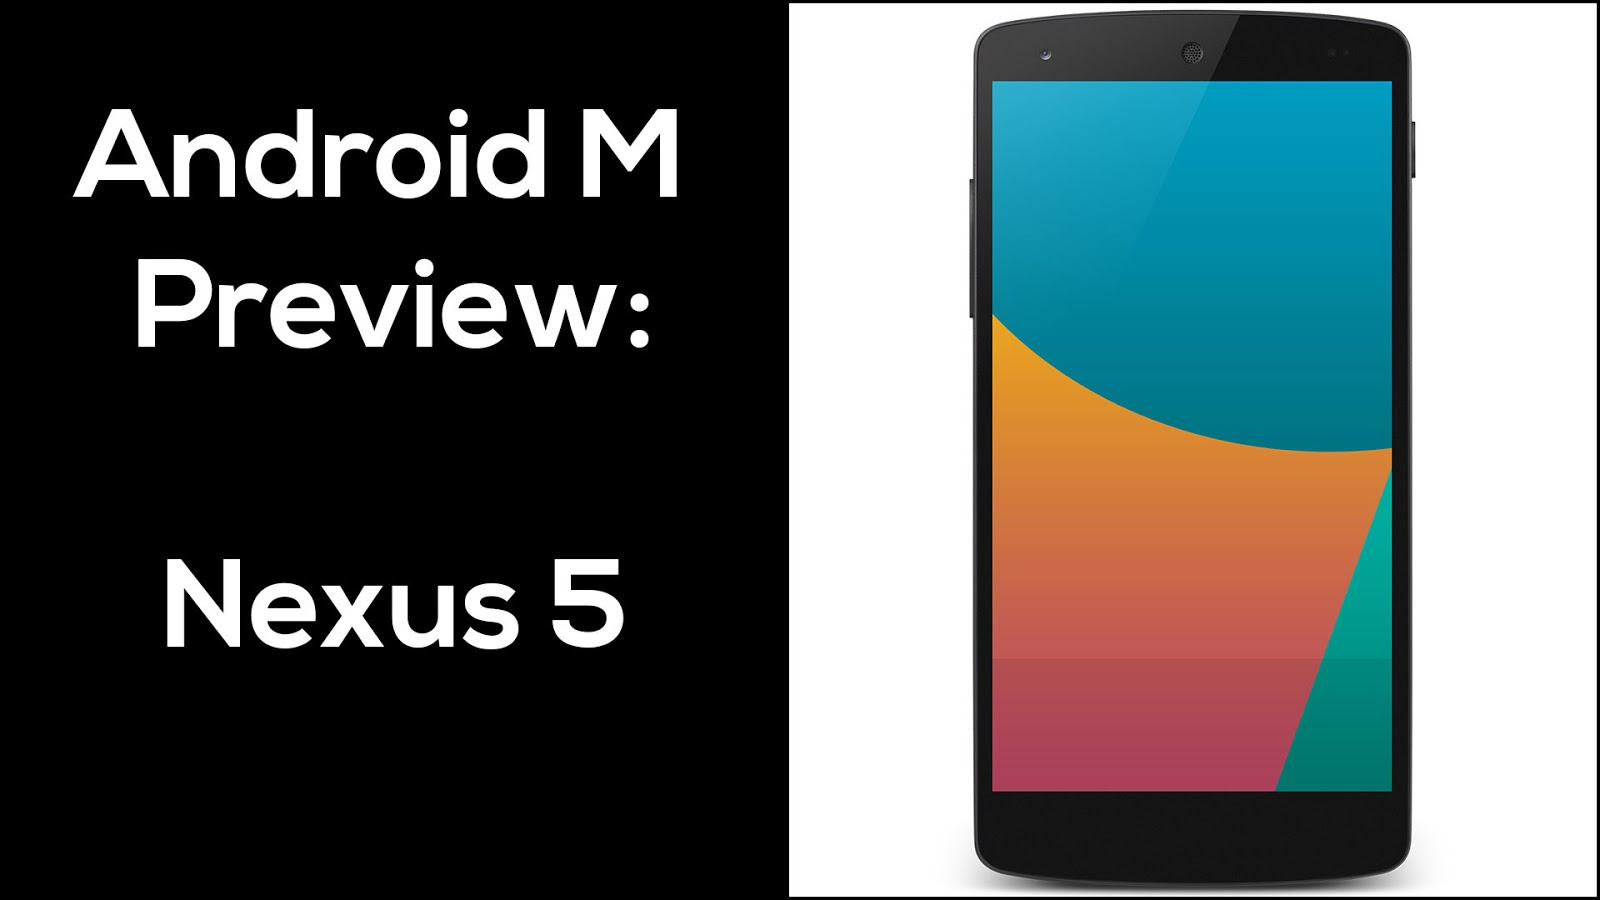 How to Install Android M Preview on Nexus 5! ~ AndroidRootz